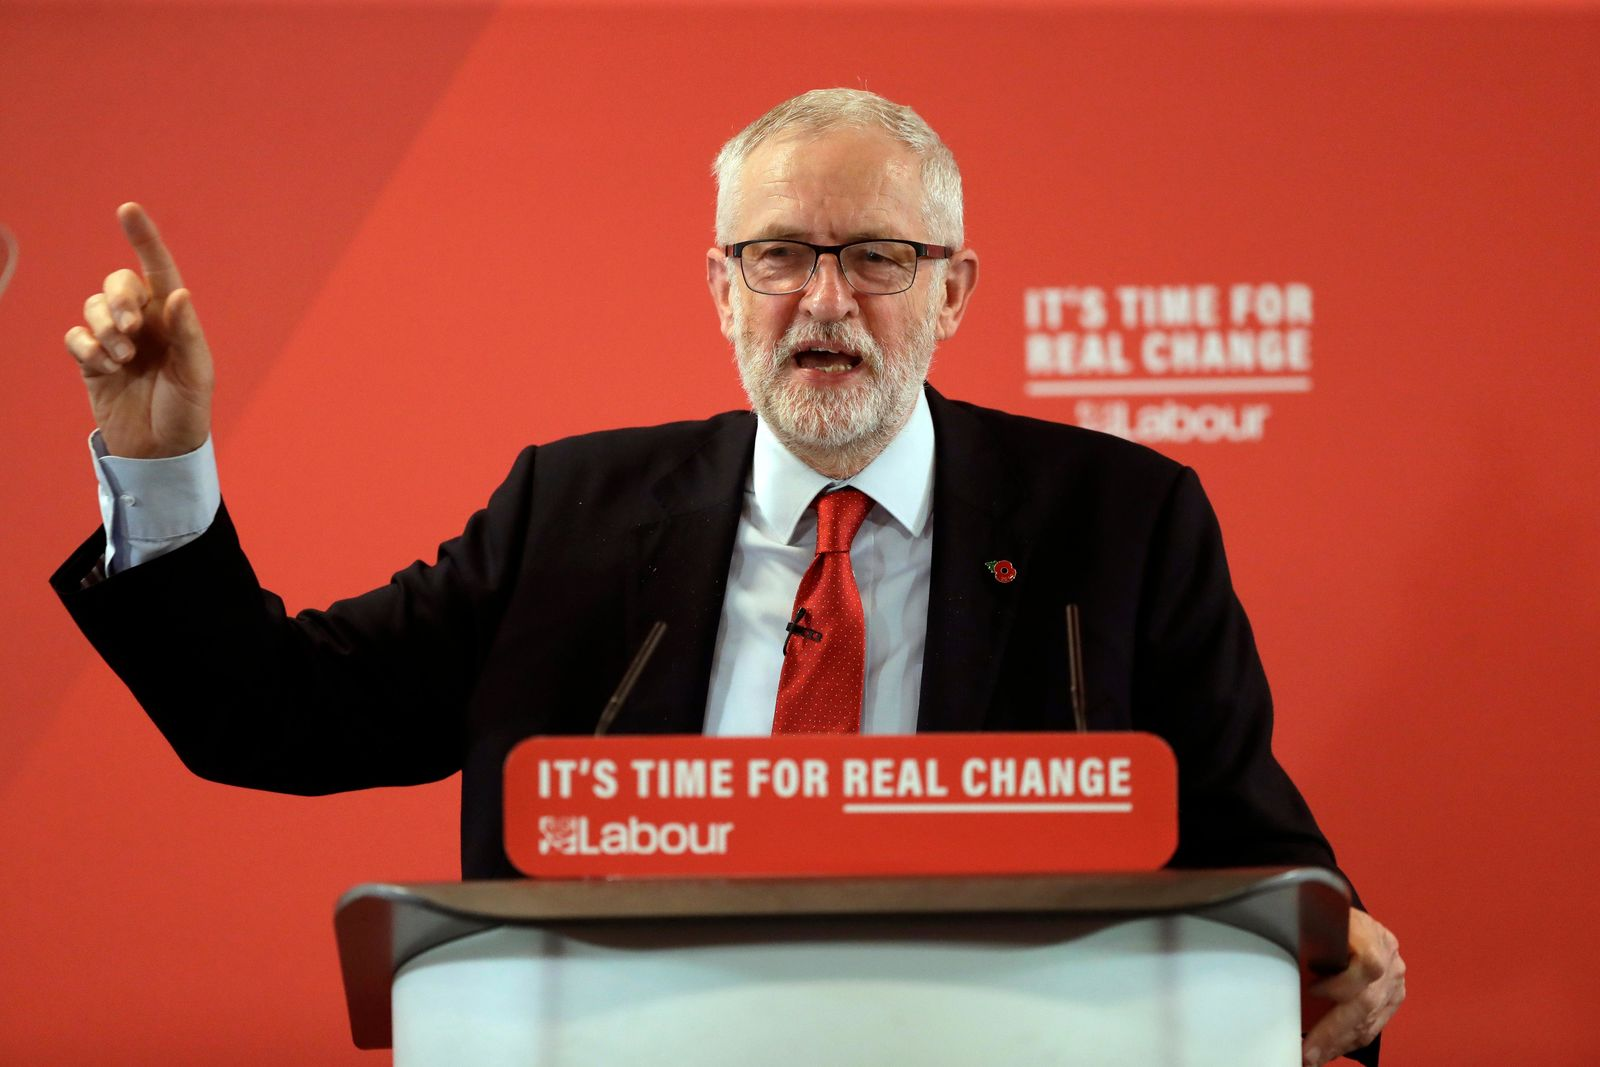 FILE- Britain's opposition Labour party leader Jeremy Corbyn delivers a speech during their election campaign event on Brexit in Harlow, England, Tuesday, Nov. 5, 2019. Britain goes to the polls on Dec. 12. (AP Photo/Matt Dunham)